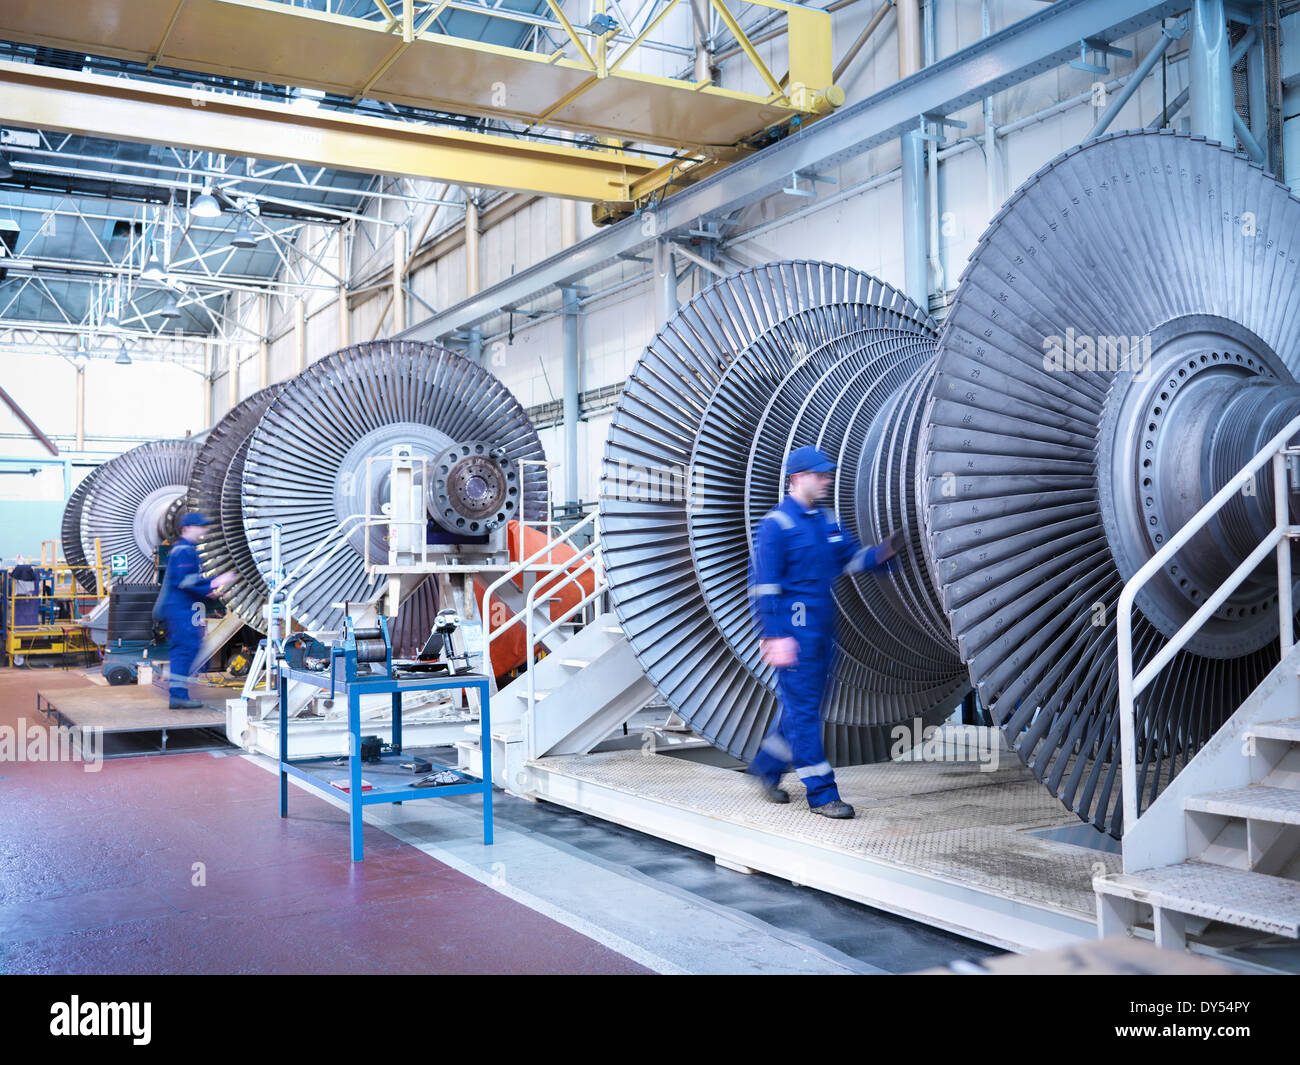 Engineers with low pressure steam turbines in repair bays in workshop - Stock Image